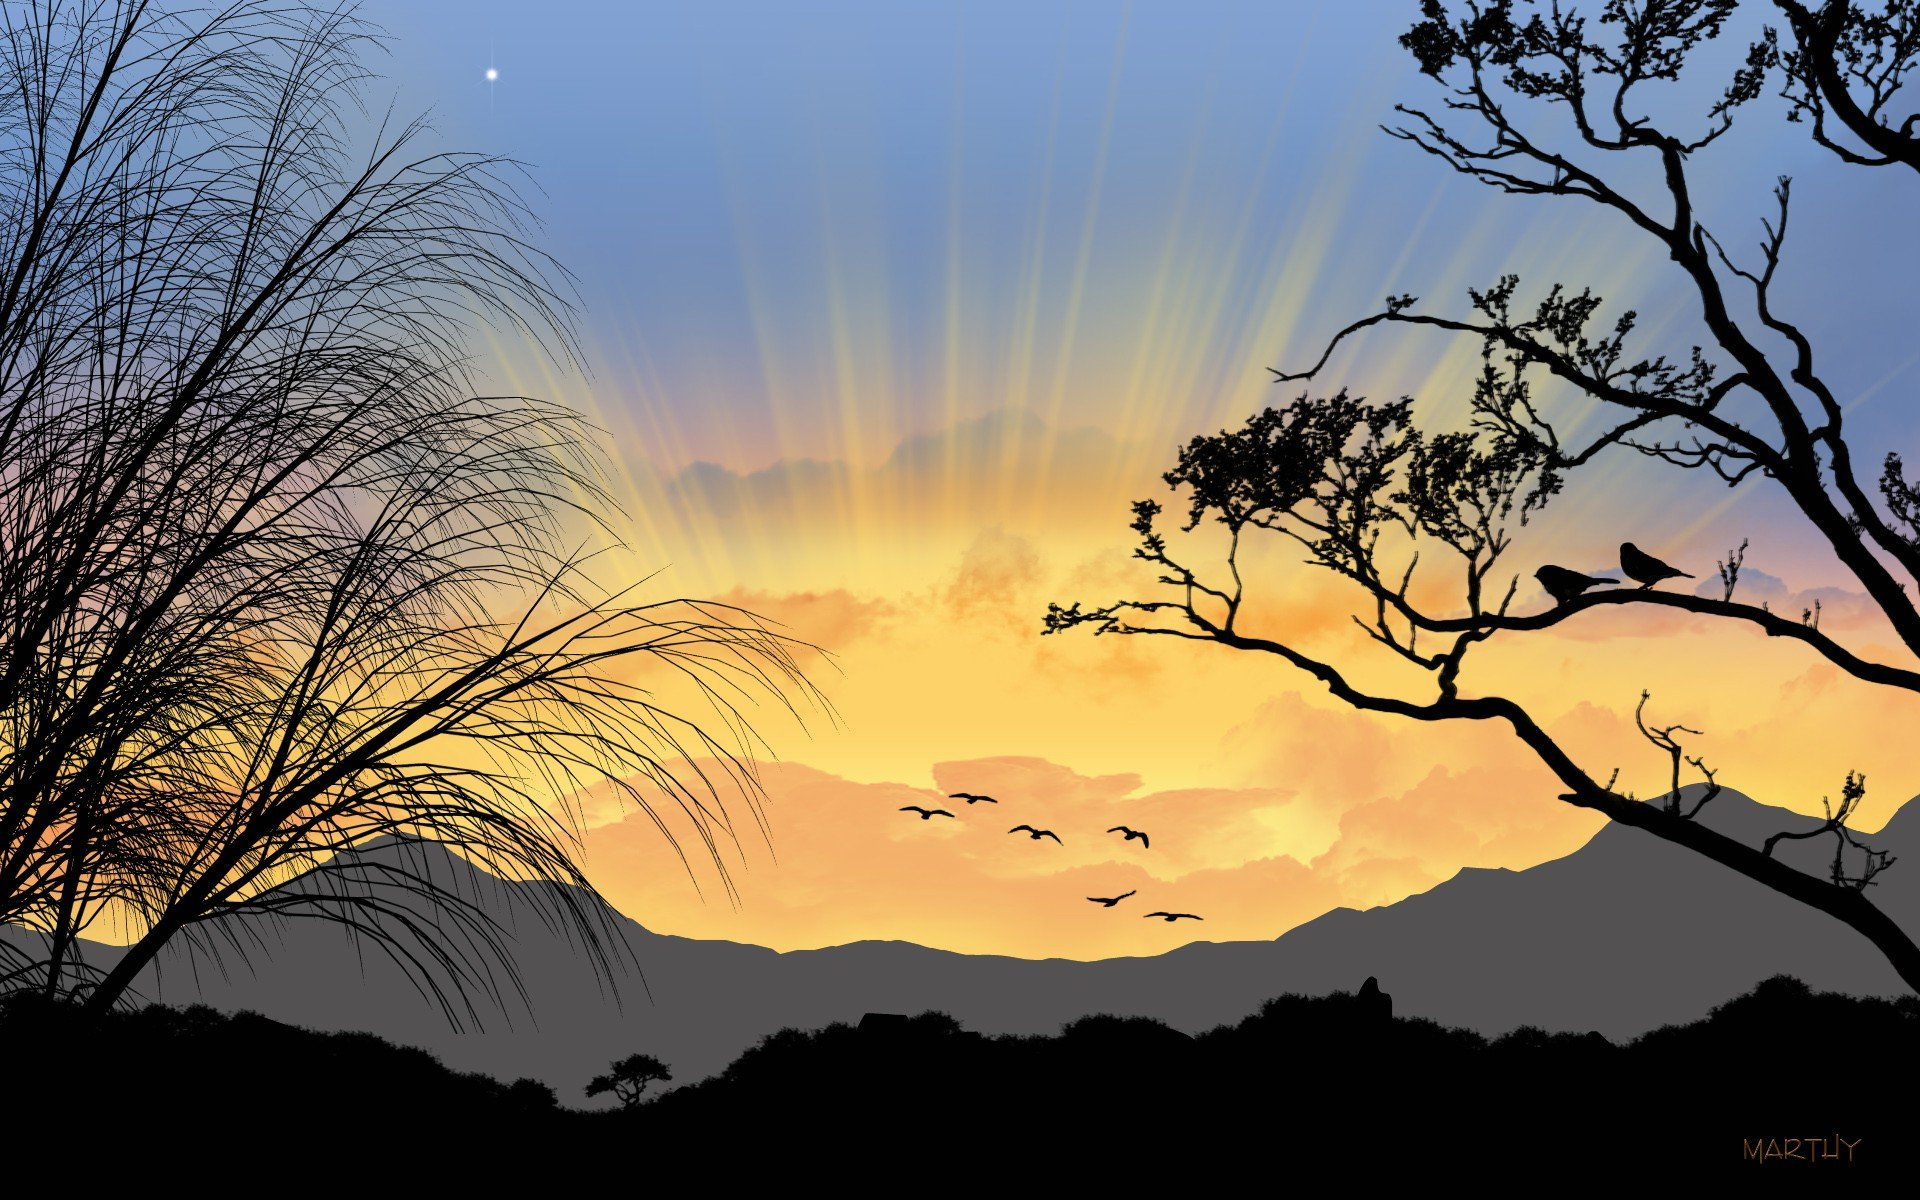 Sunrise trees silhouettes wallpaper | 1920x1200 | 323544 | WallpaperUP